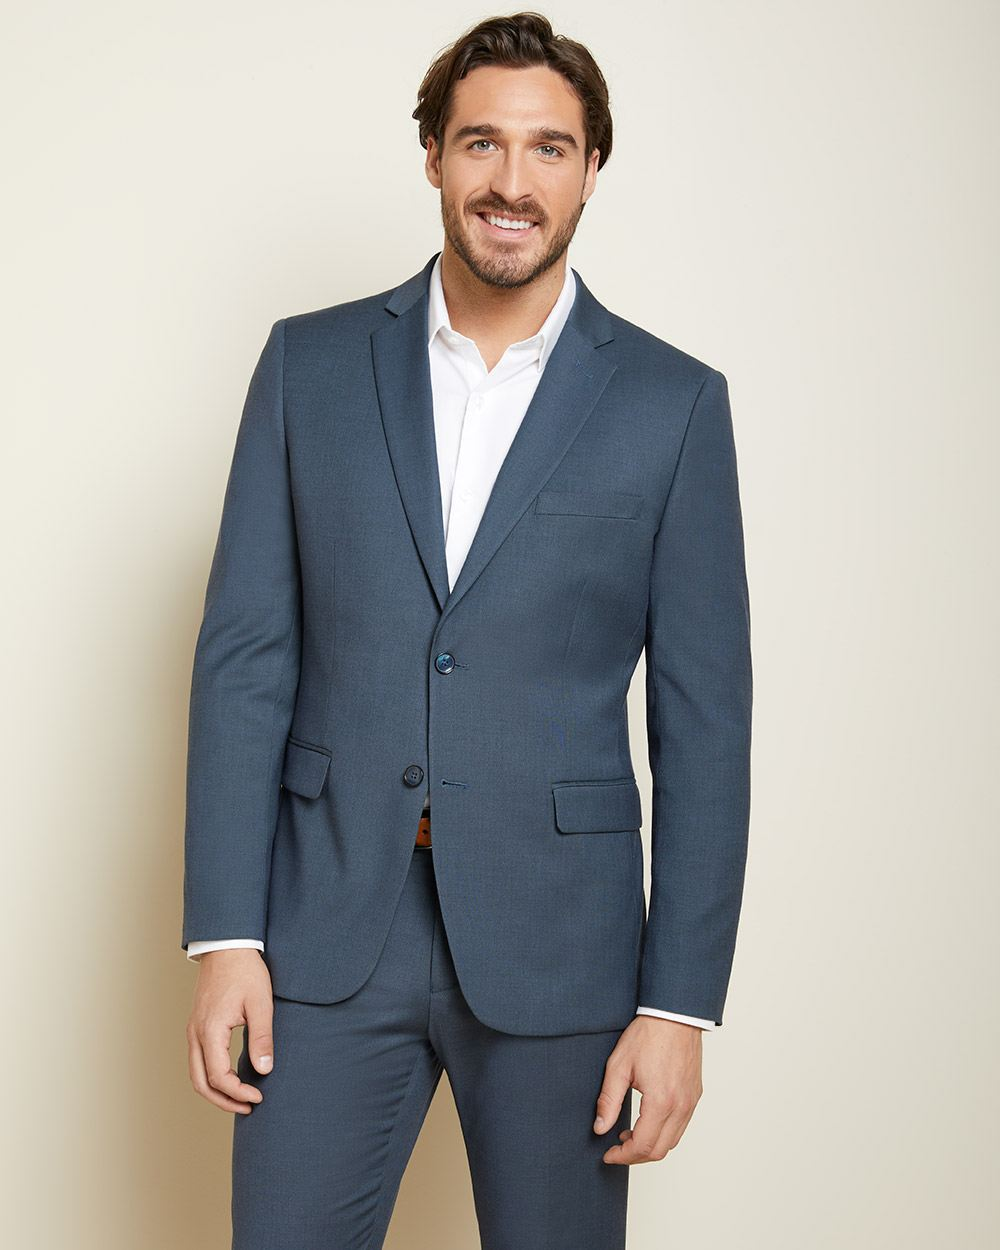 Tailored Fit Teal blue suit blazer with COOLMAX(TM) technology